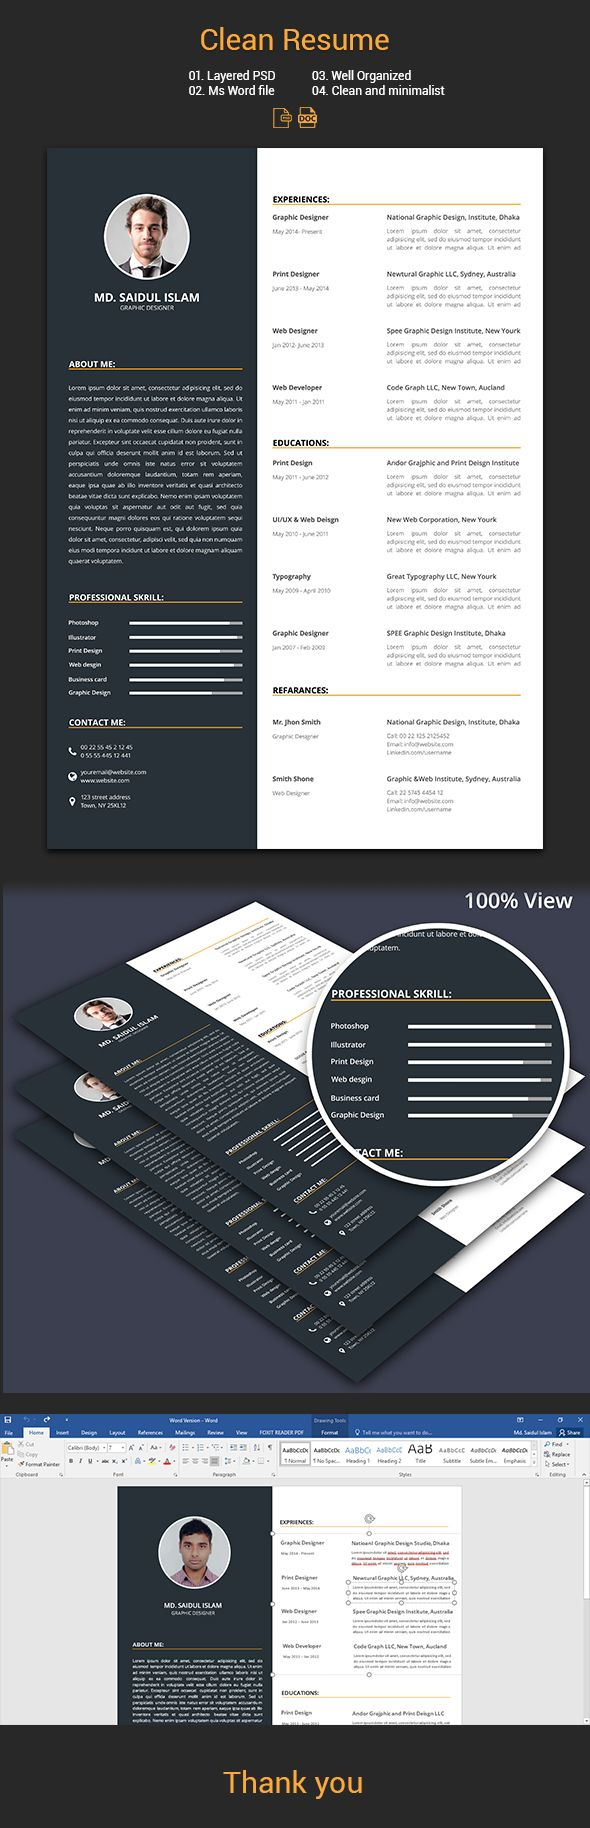 key words for resume%0A Get the best  resume  cv for your own business and  job interview